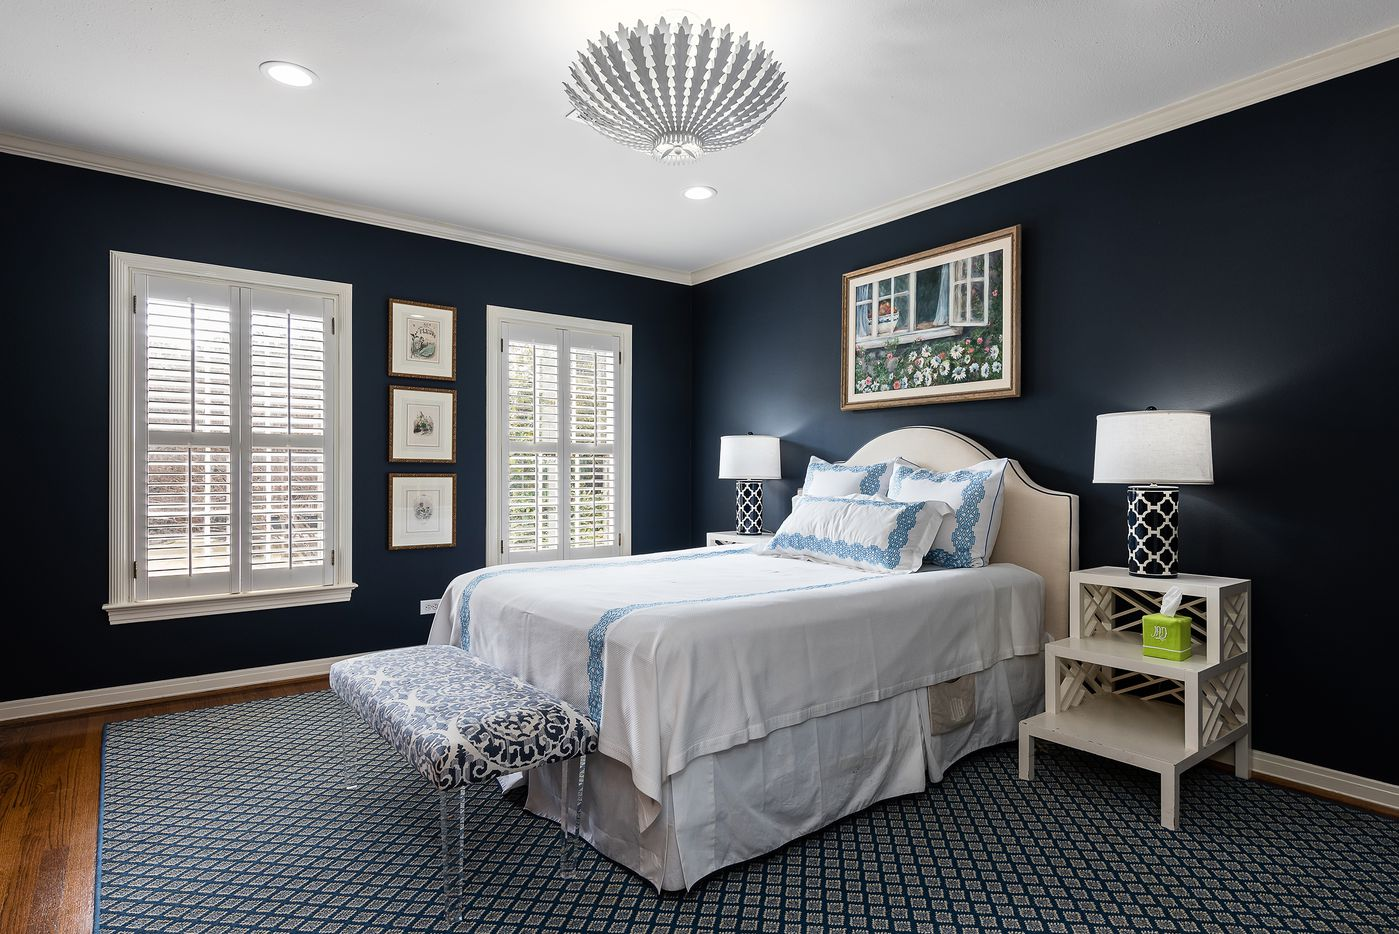 Bedroom at 5845 Lupton Drive.